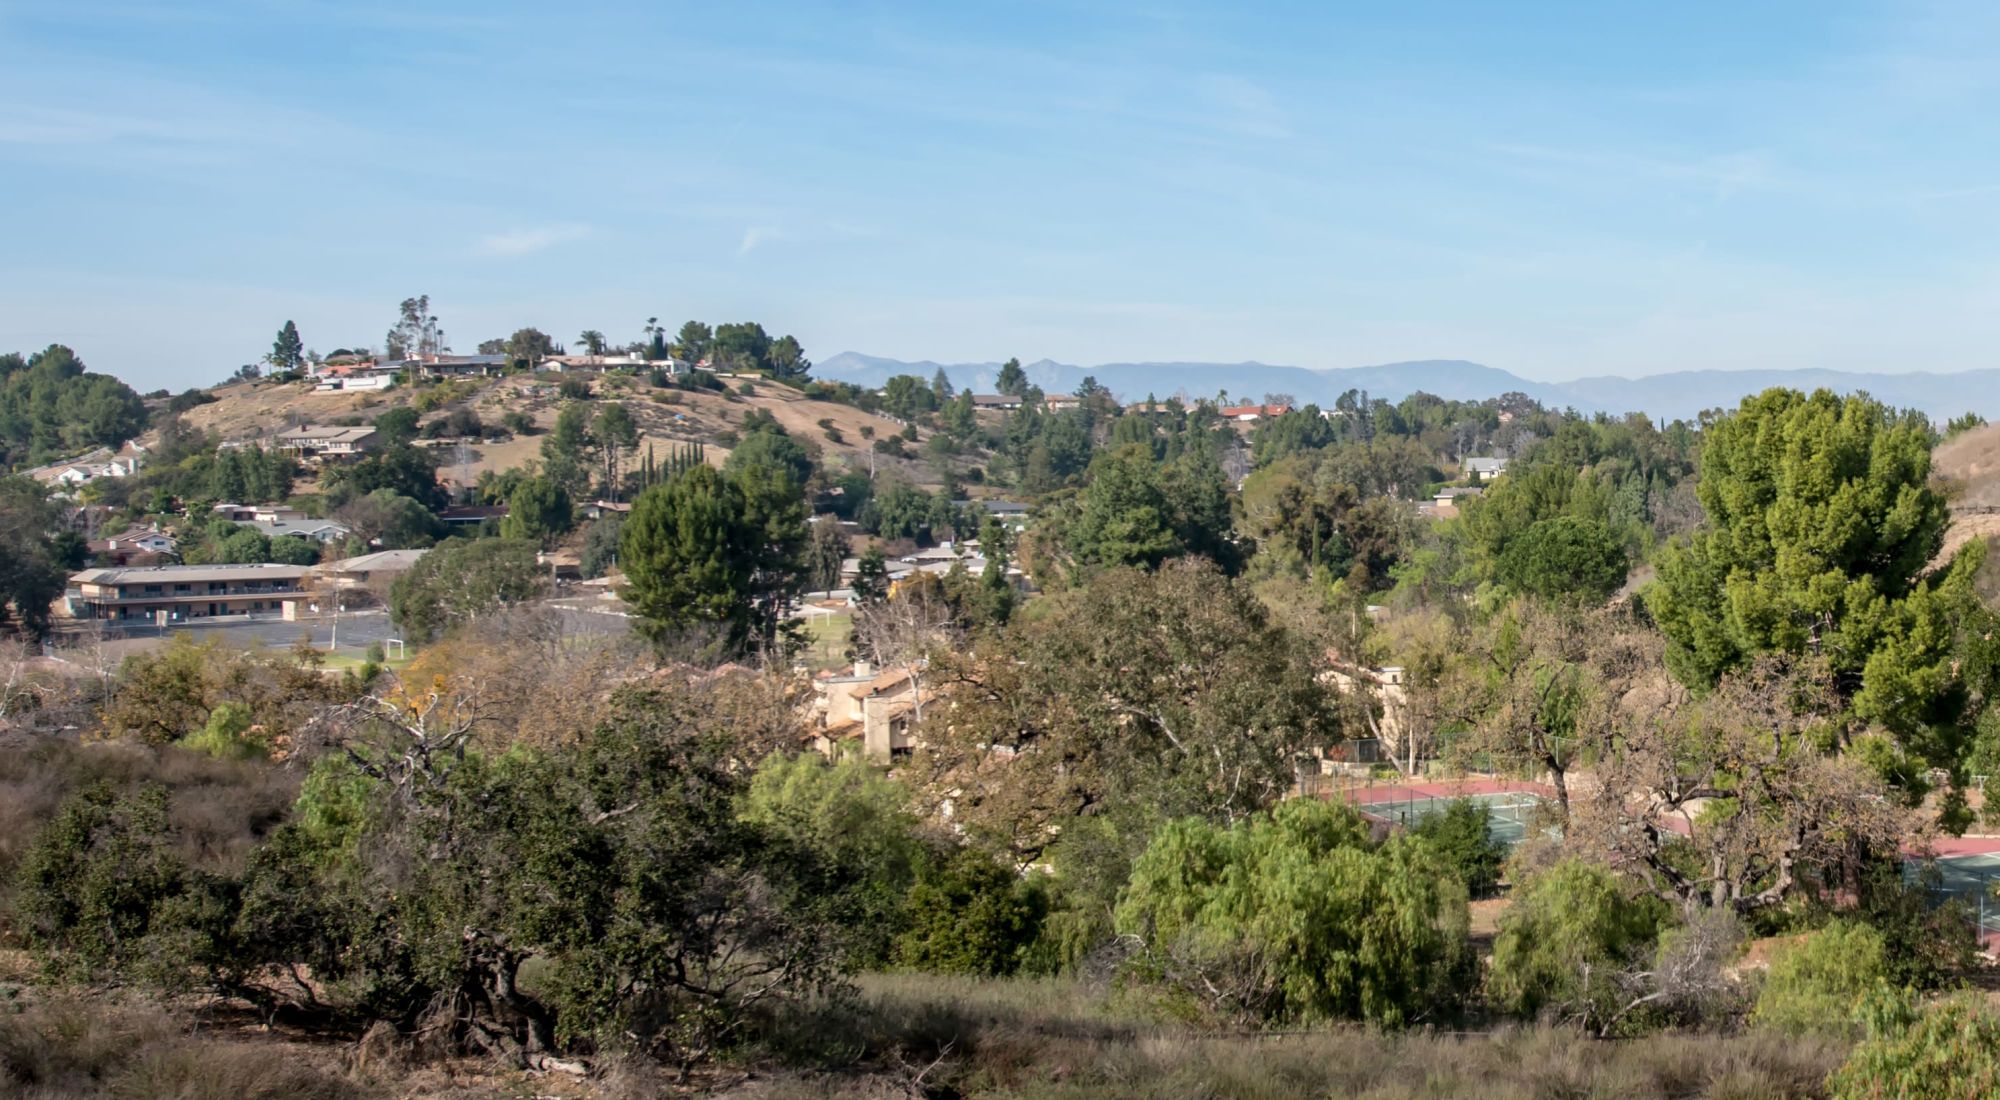 Neighborhood at Sofi Thousand Oaks in Thousand Oaks, California